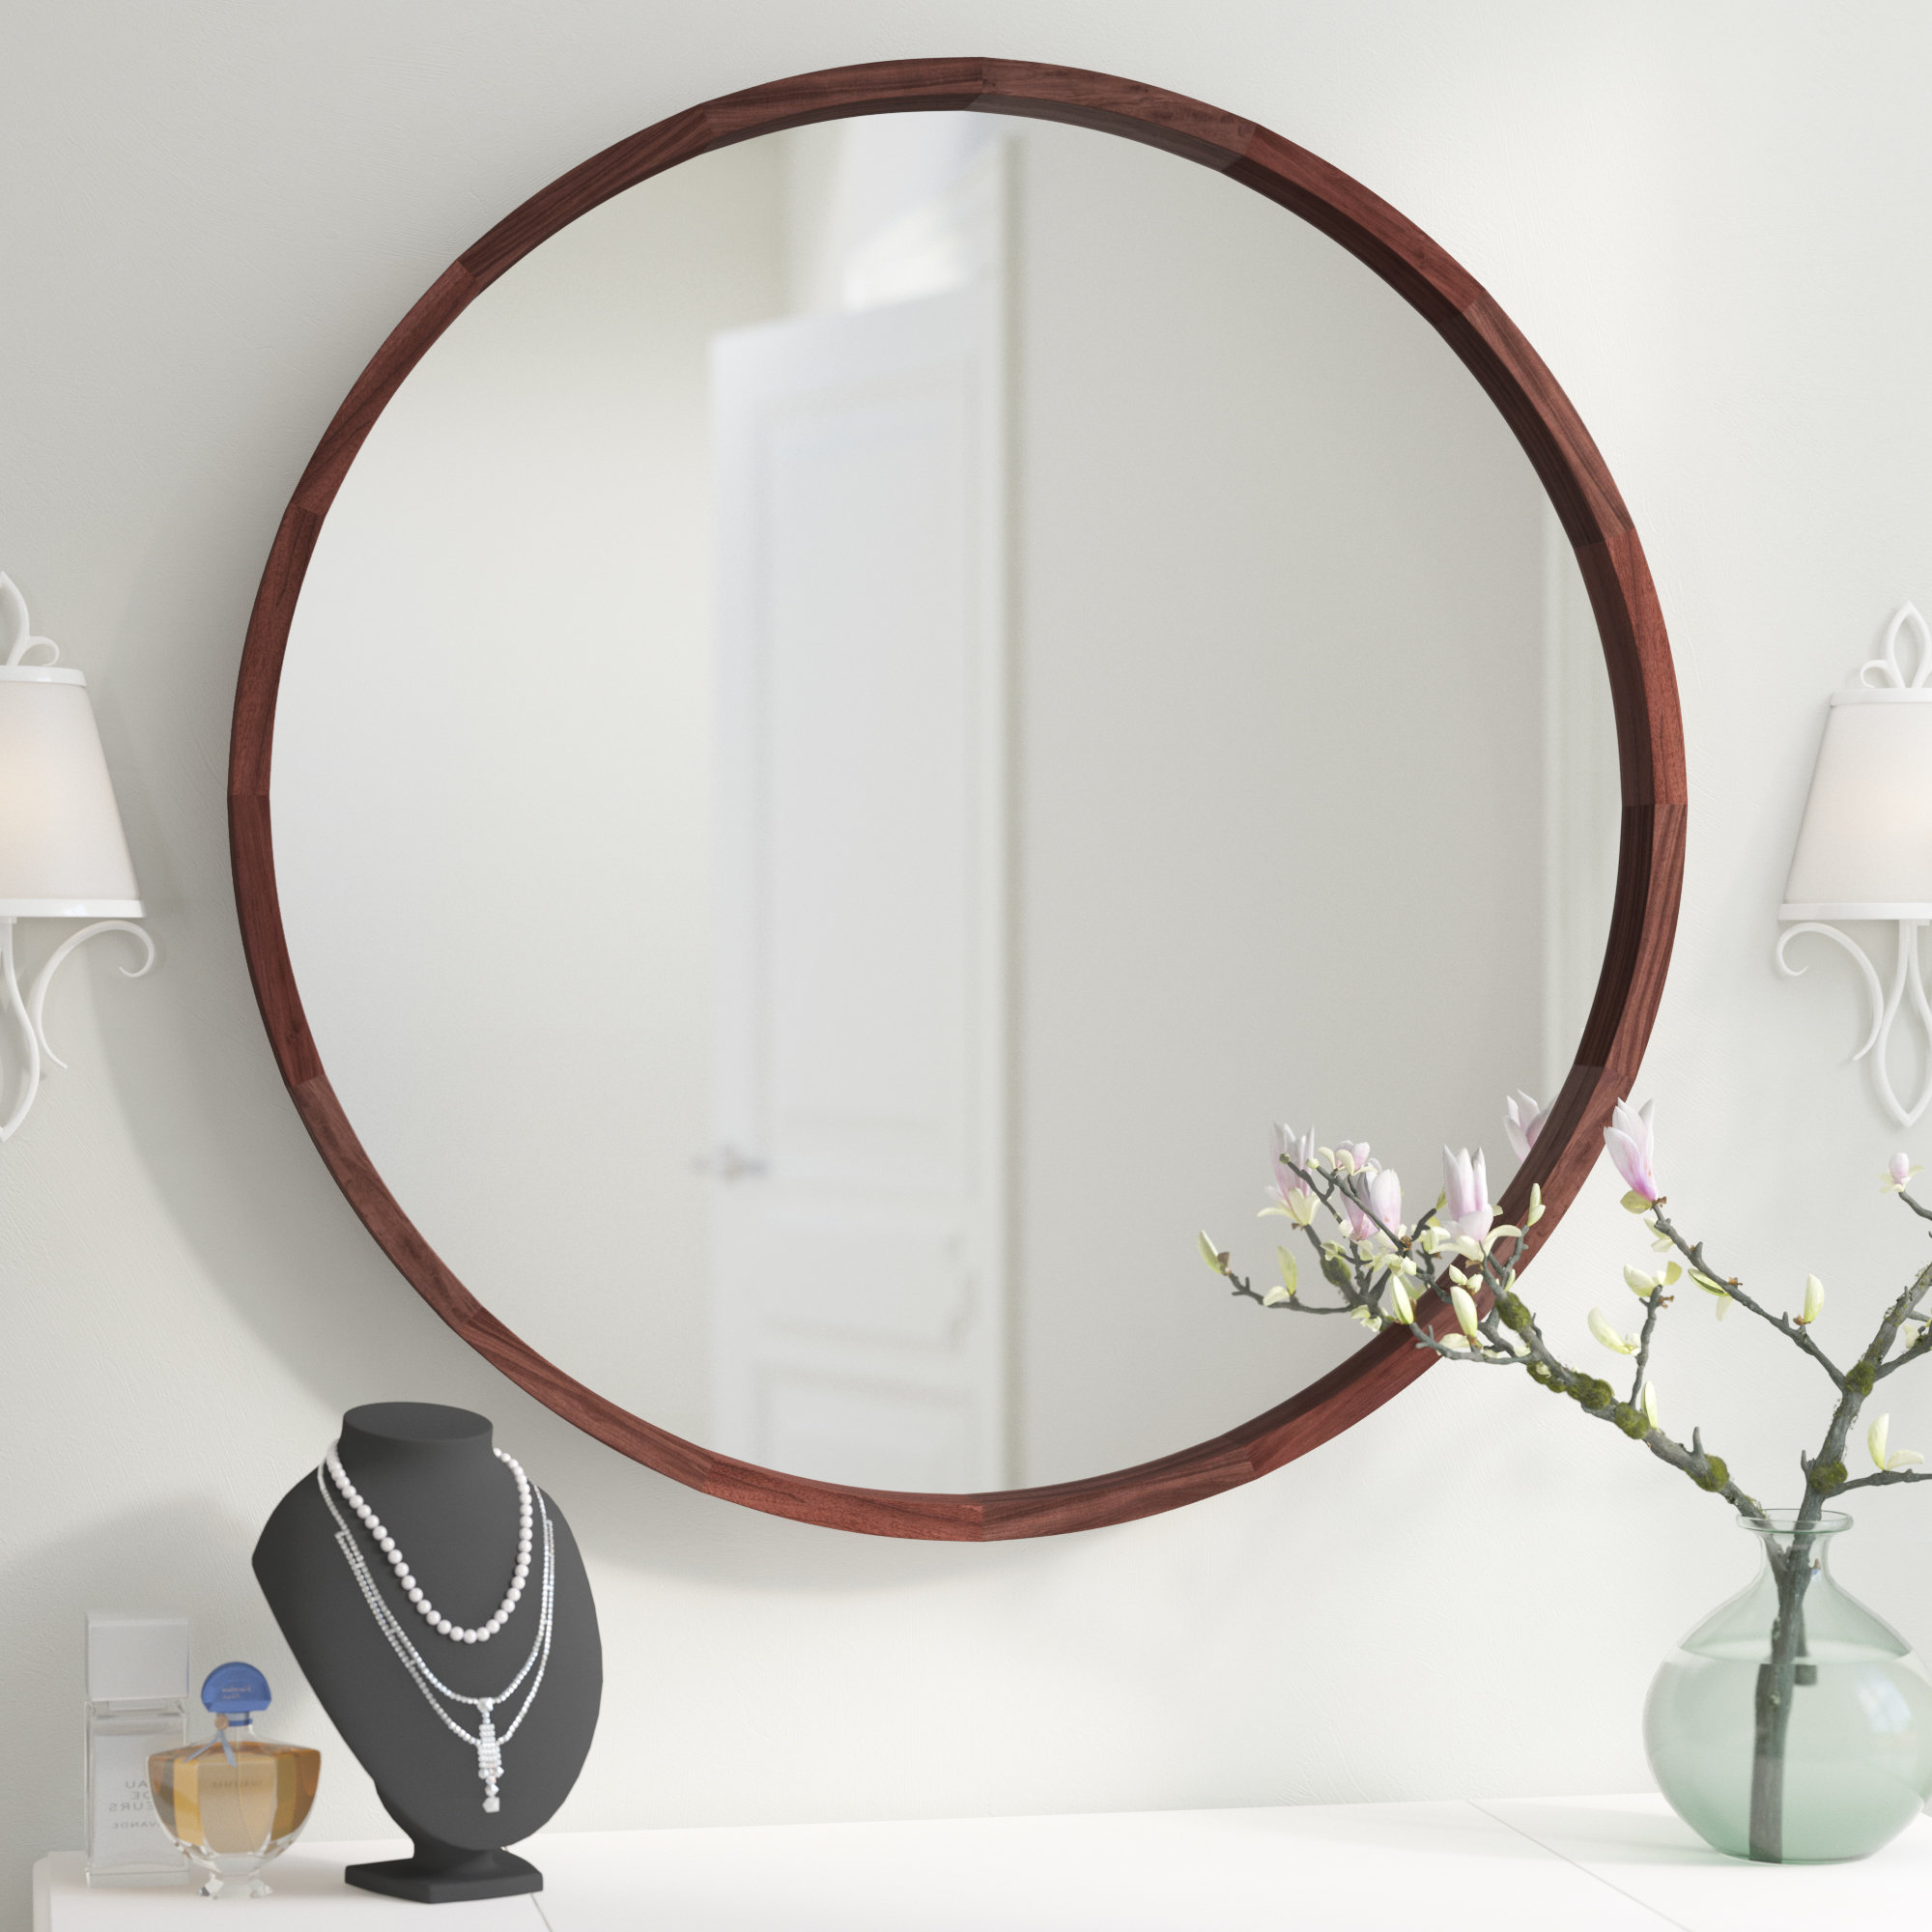 2019 Loftis Modern & Contemporary Accent Wall Mirror Intended For Colton Modern & Contemporary Wall Mirrors (View 6 of 20)